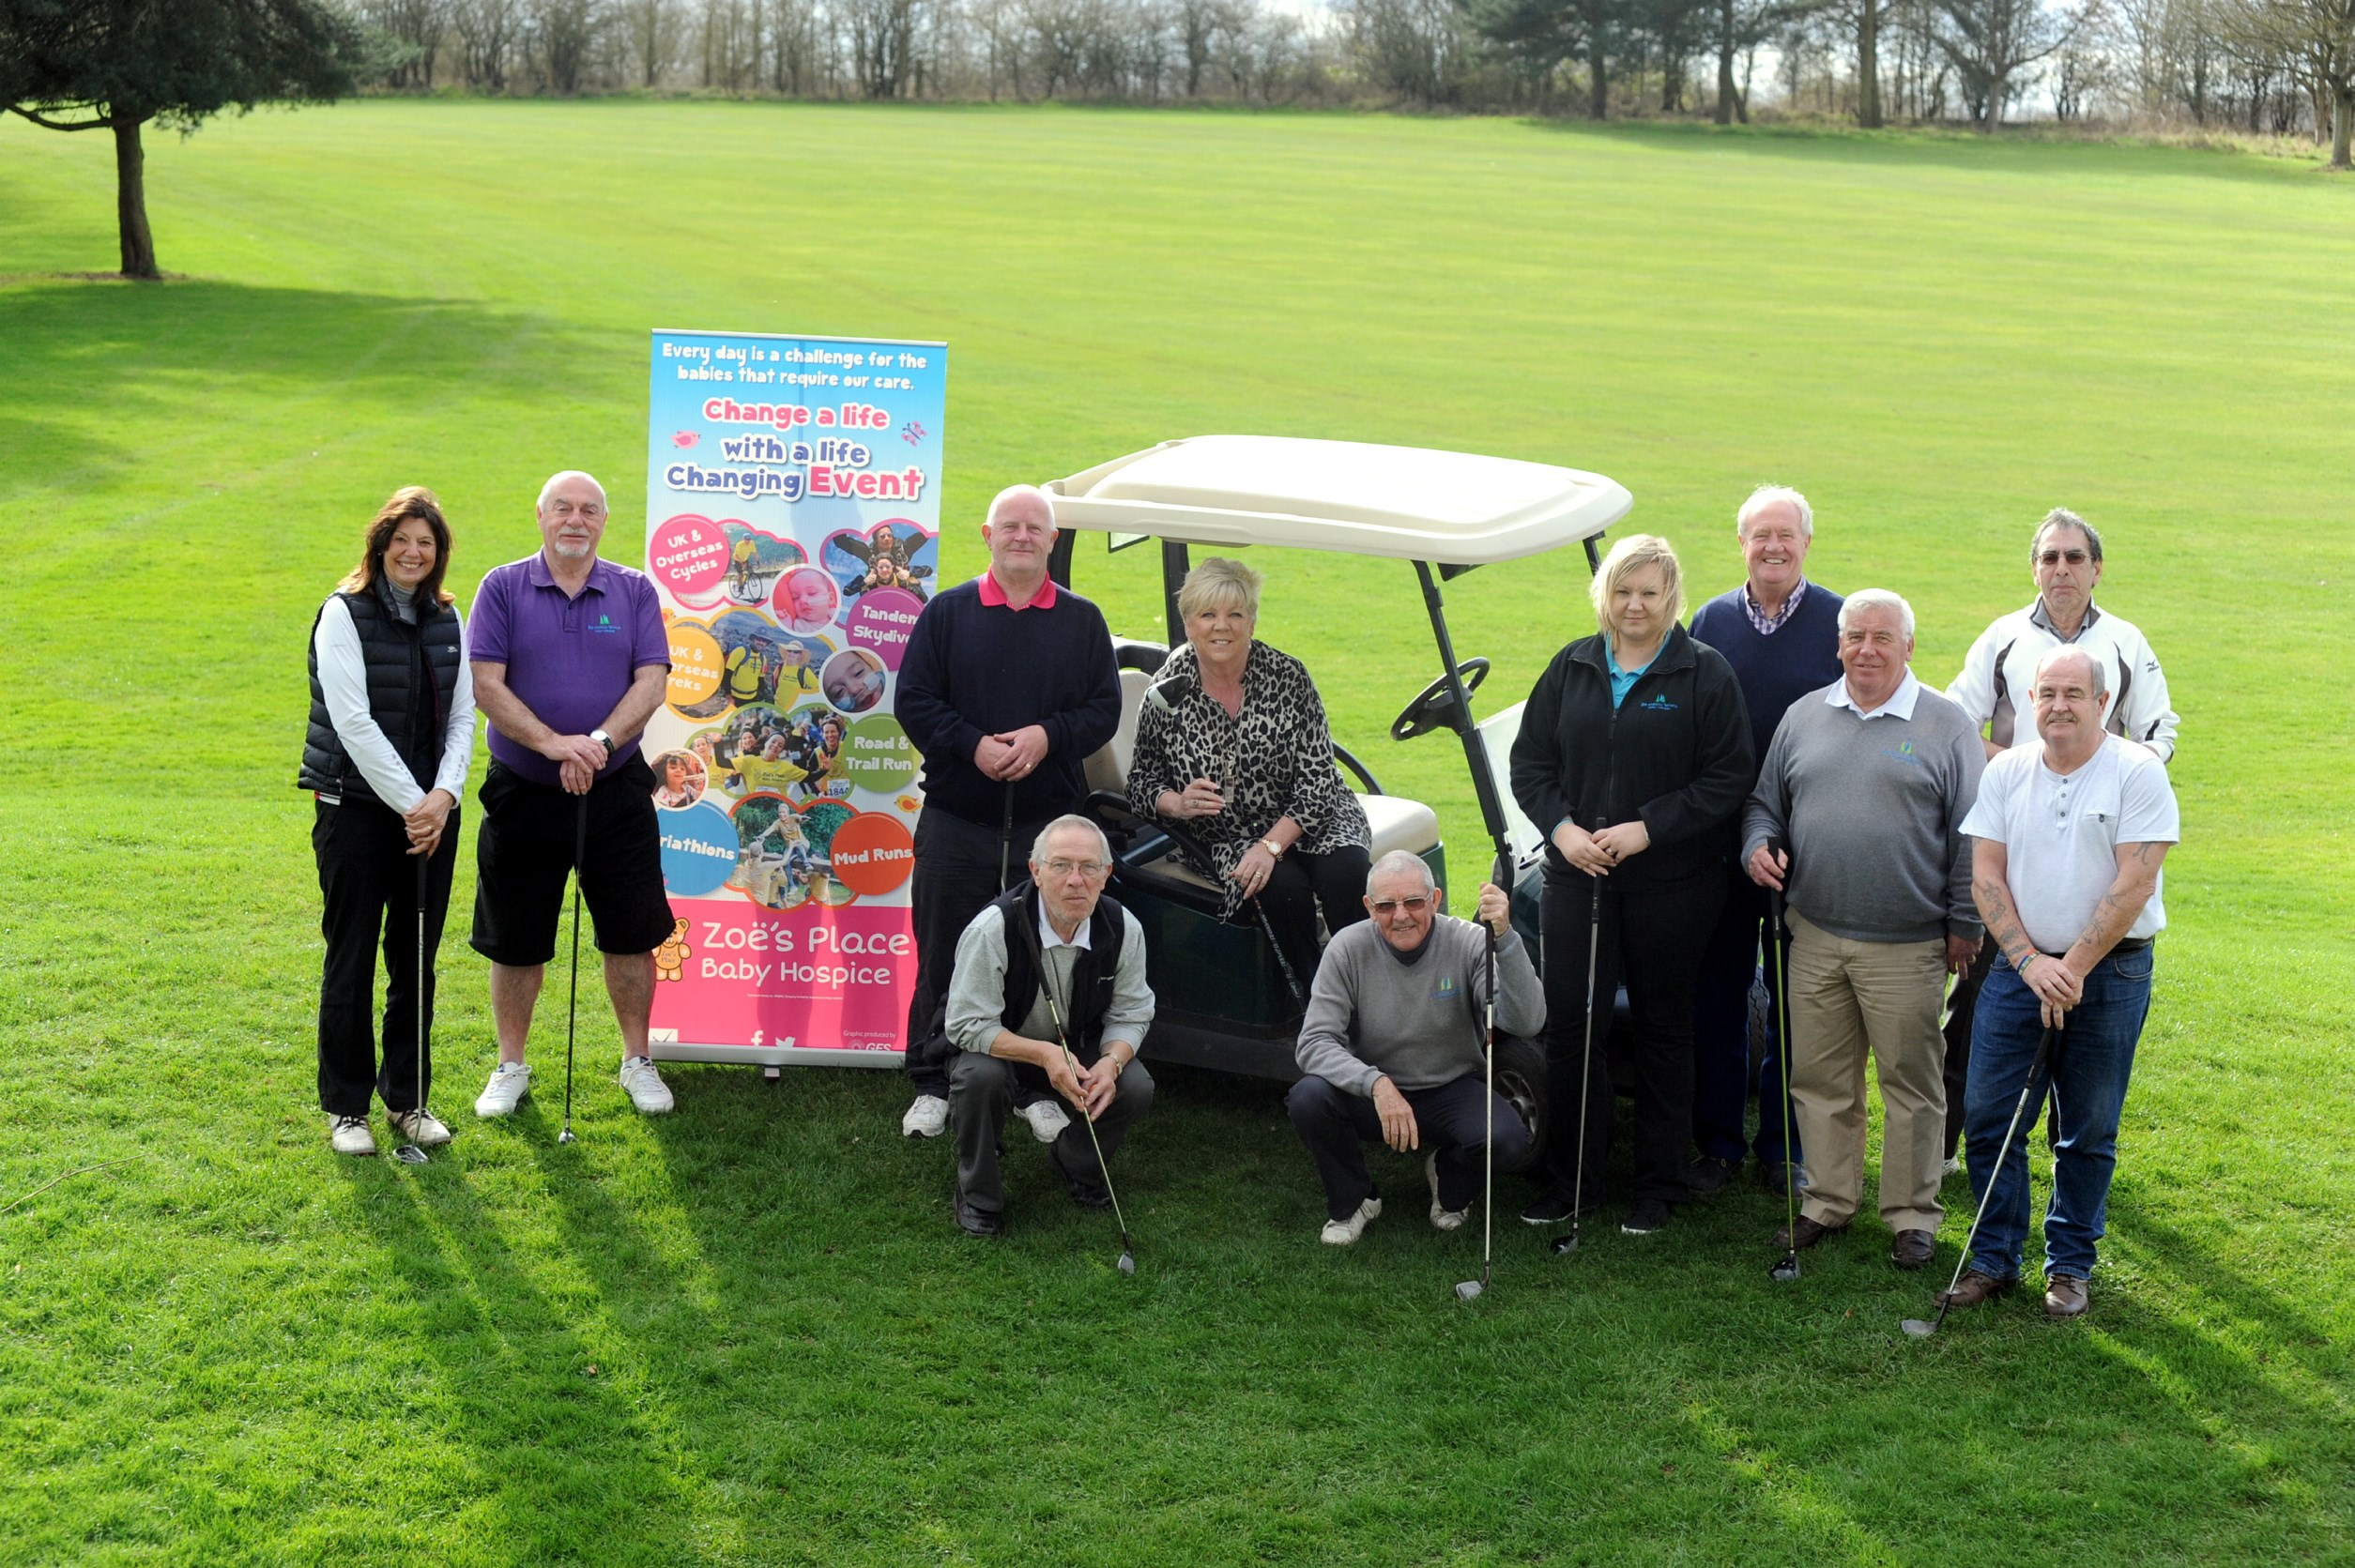 Coventry golfers raise funds for Zoe's Place Baby Hospice